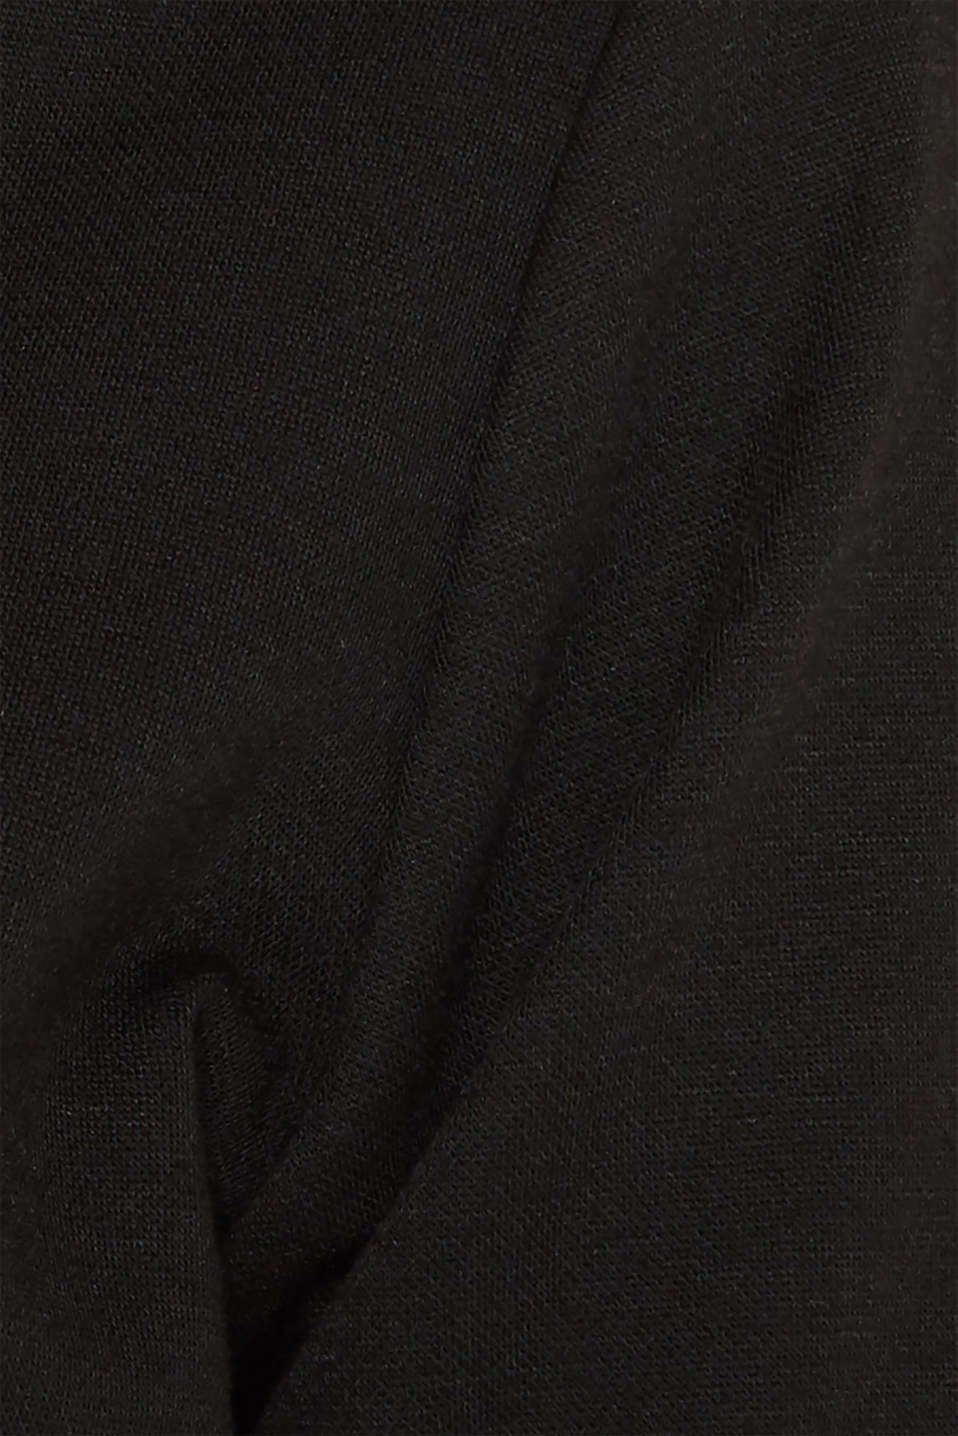 Boxy stretch jersey top, BLACK, detail image number 2